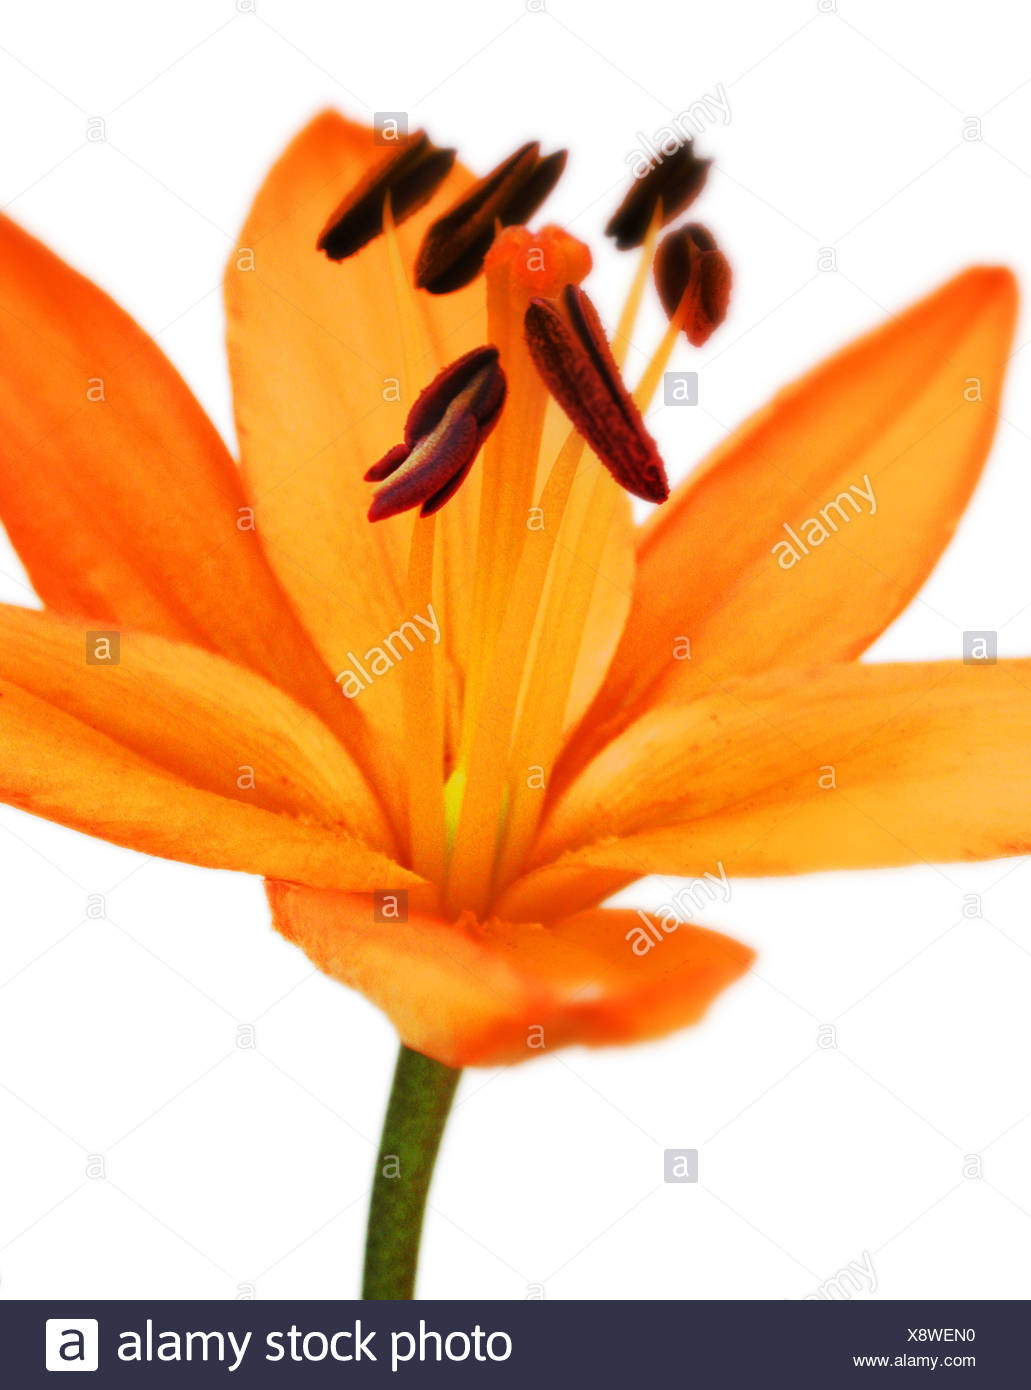 A singular lily with modern crop - Stock Image